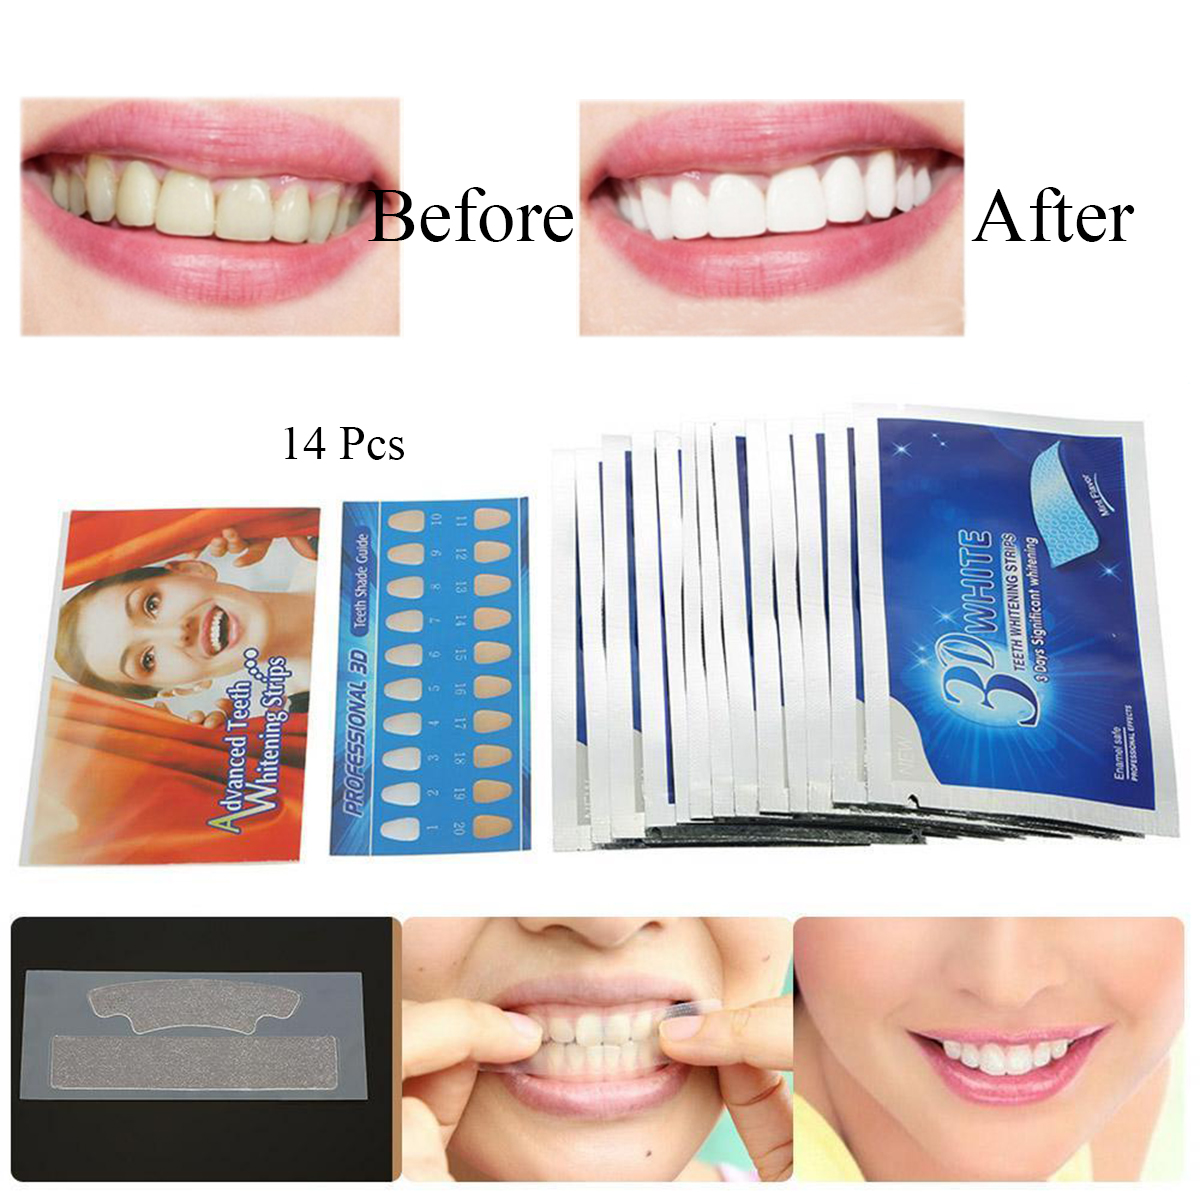 28 Strips 14 Pouches 3D White Gel Teeth Whitening Kit Home Bleaching Whitestrips Beauty